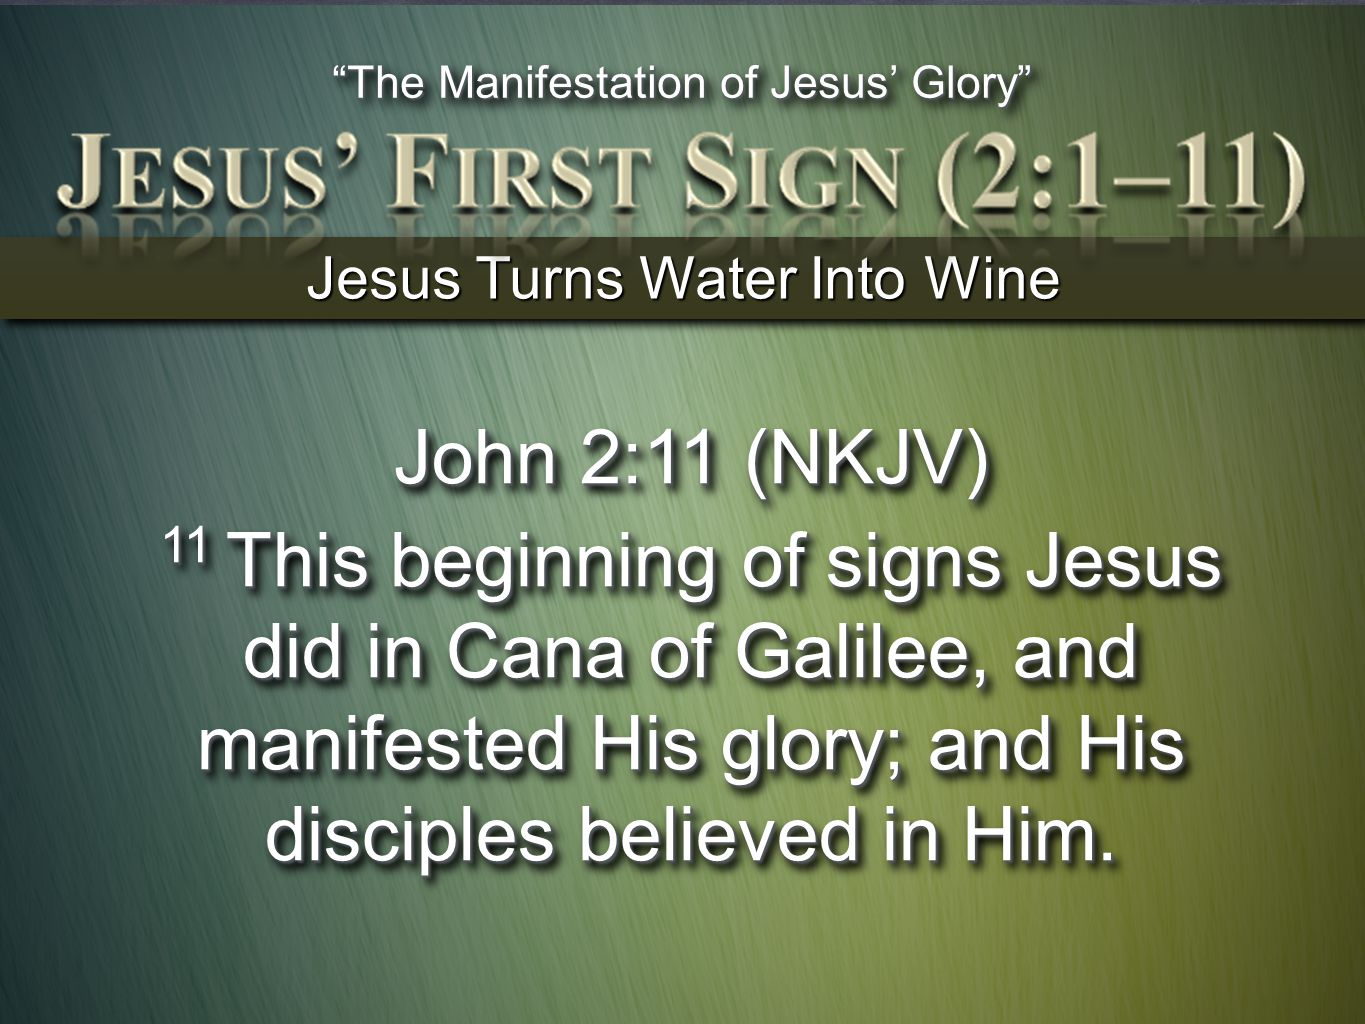 Jesus Turns Water Into Wine John 2:11 (NKJV) 11 This beginning of signs Jesus did in Cana of Galilee, and manifested His glory; and His disciples beli